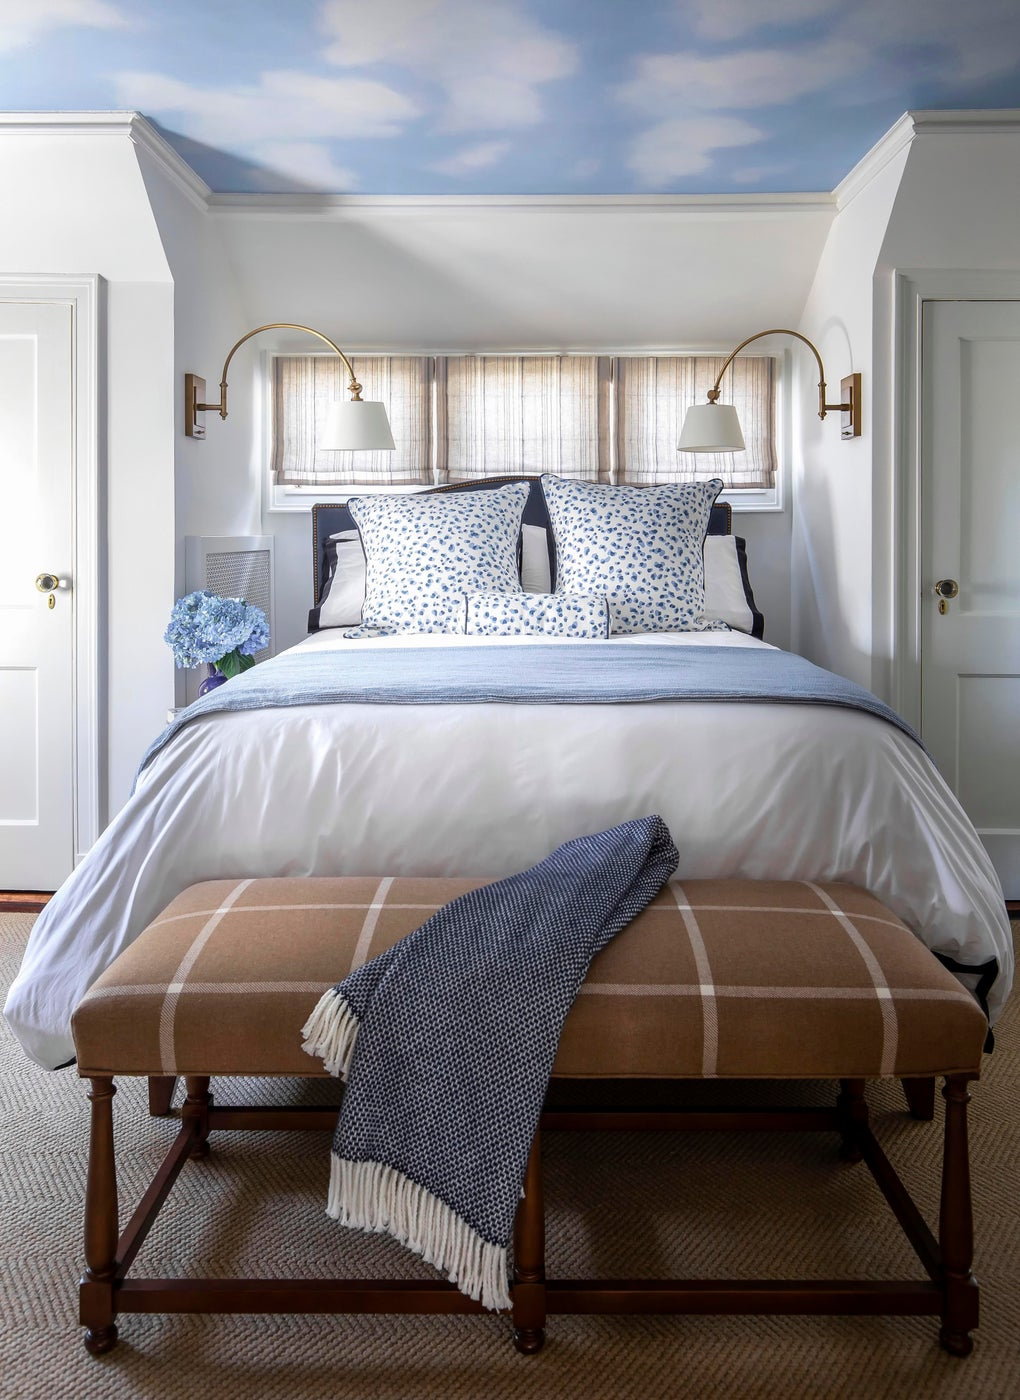 Blue and white bedroom with navy leopard linens, swing arm sconces, sheer roman shades and a wool camel plaid bench with throw.